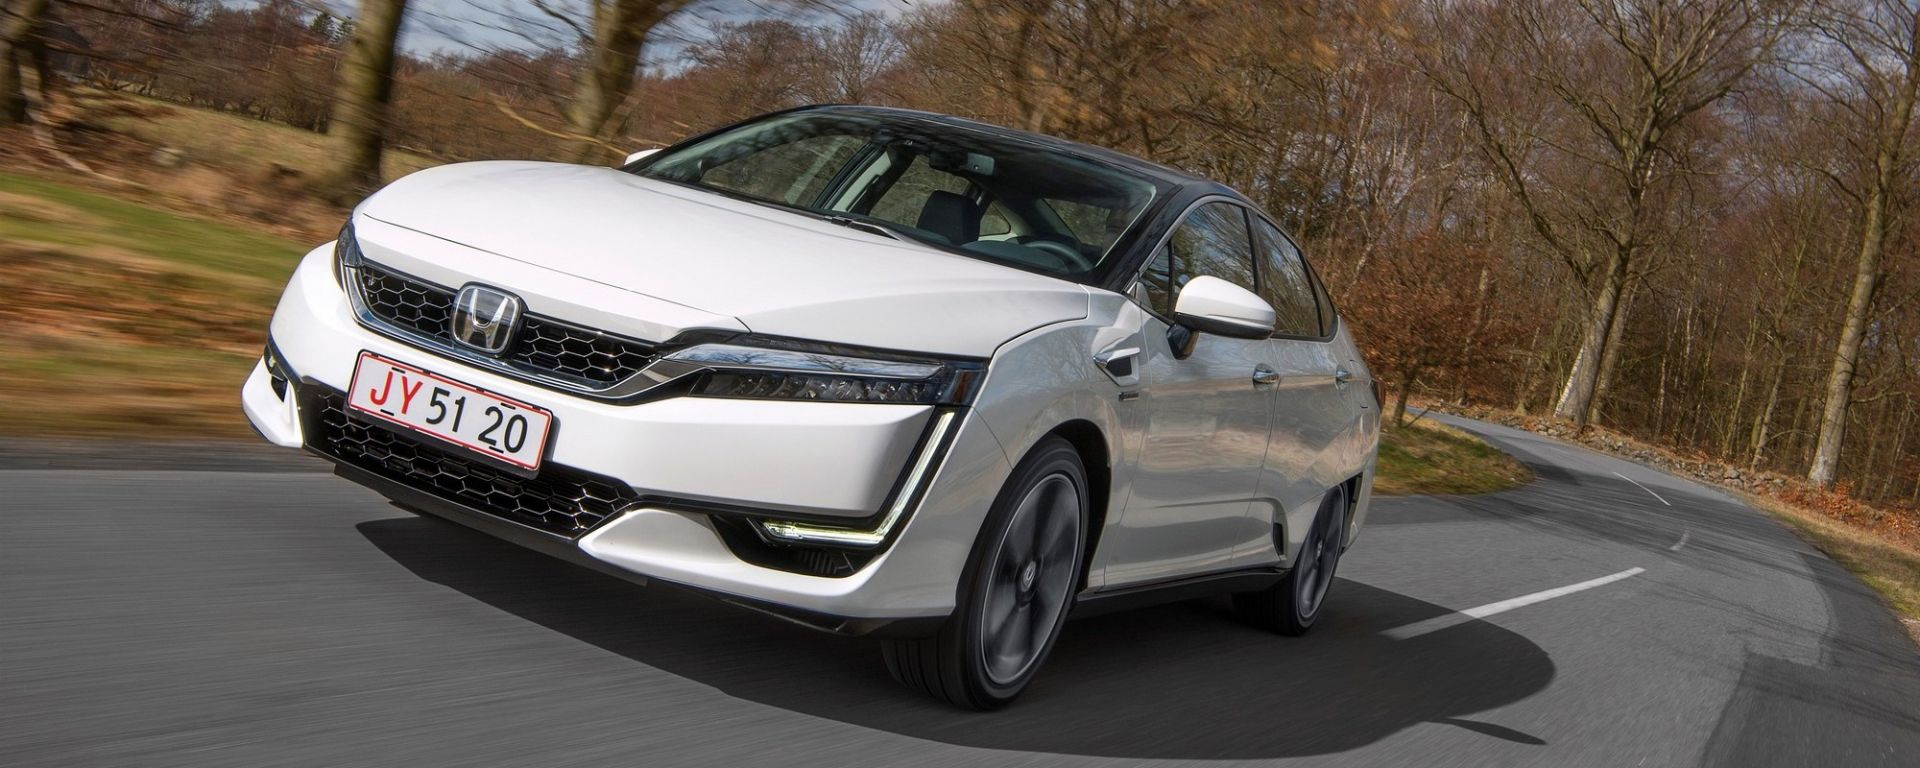 Honda Clarity Fuel Cell: così si guida un'auto a idrogeno (VIDEO)